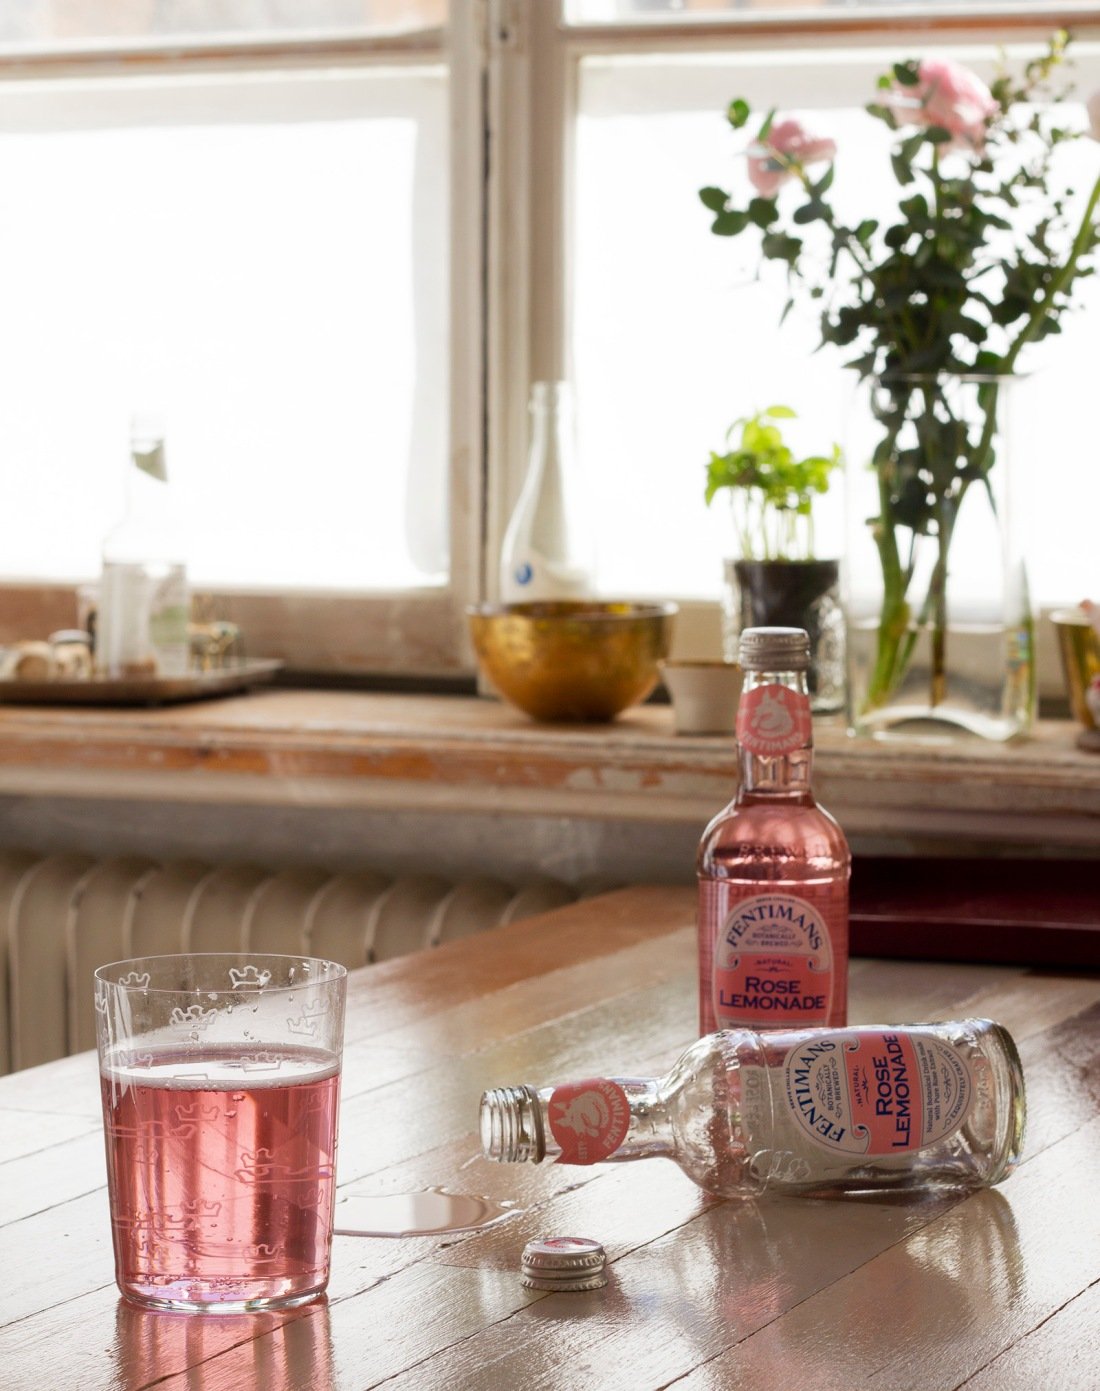 fentimans-rose-lemonade-bottles-flowers